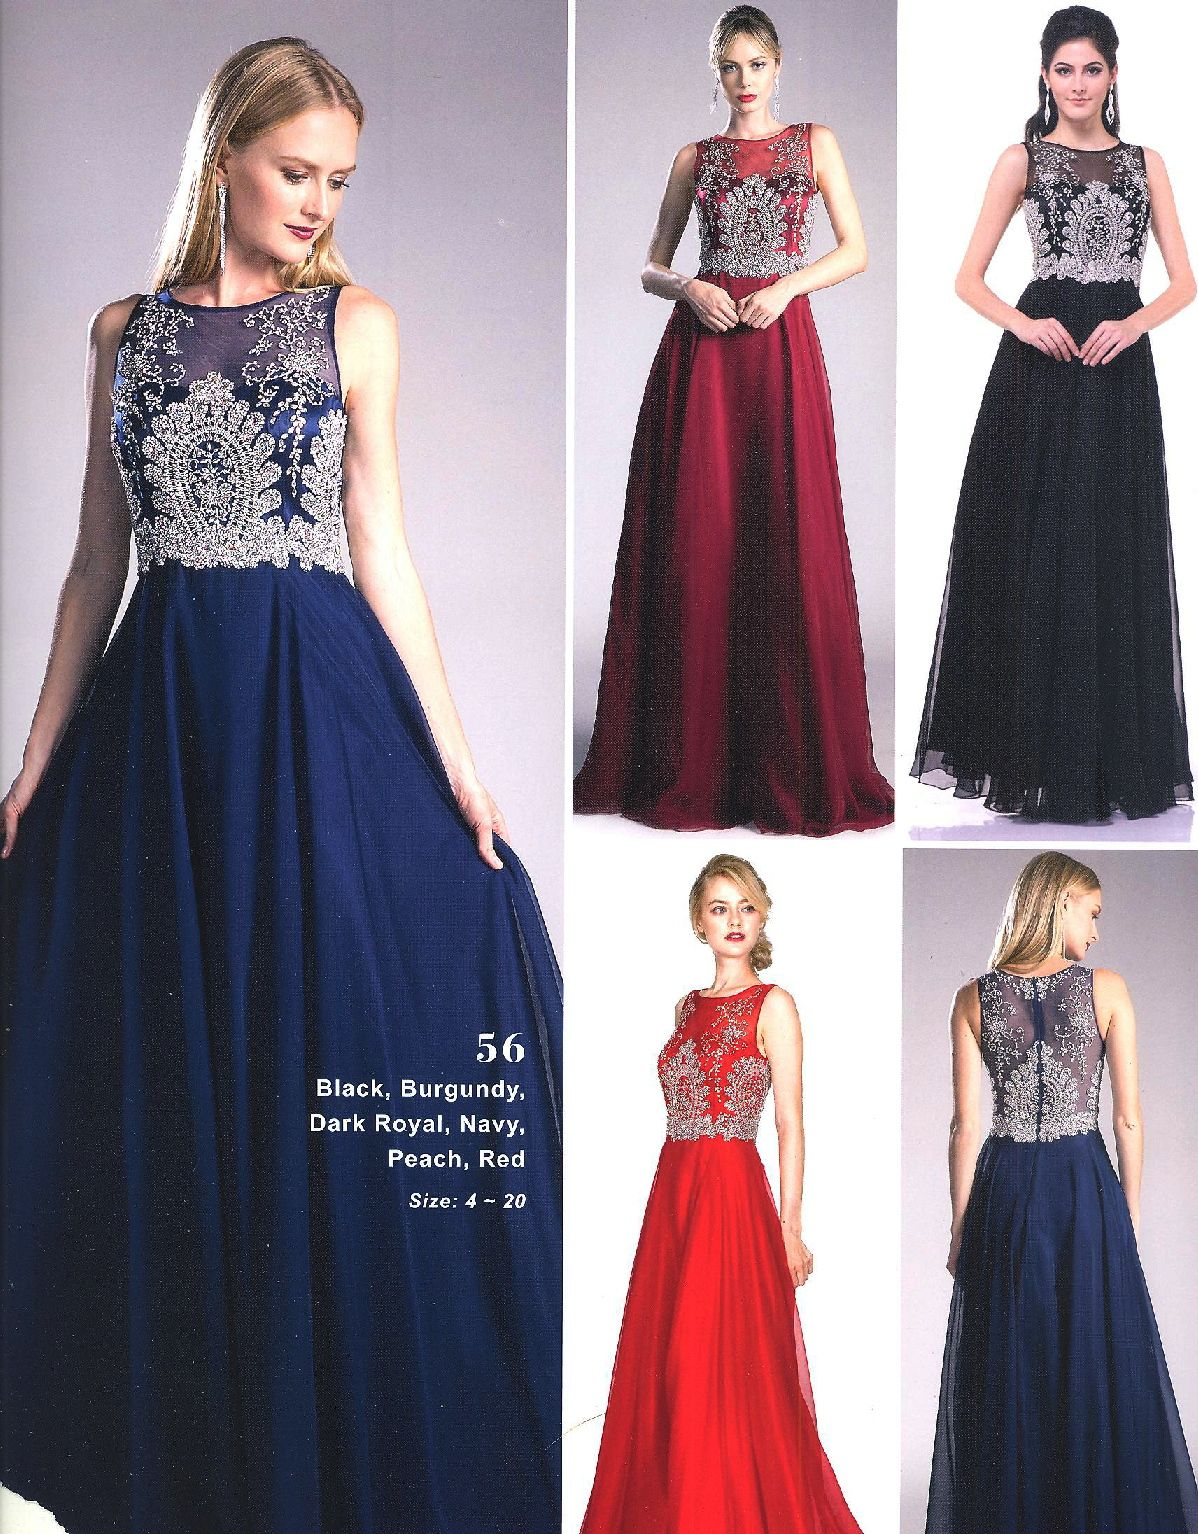 Prom party evening dresses by cinderellaucbrueadducbrueembellished